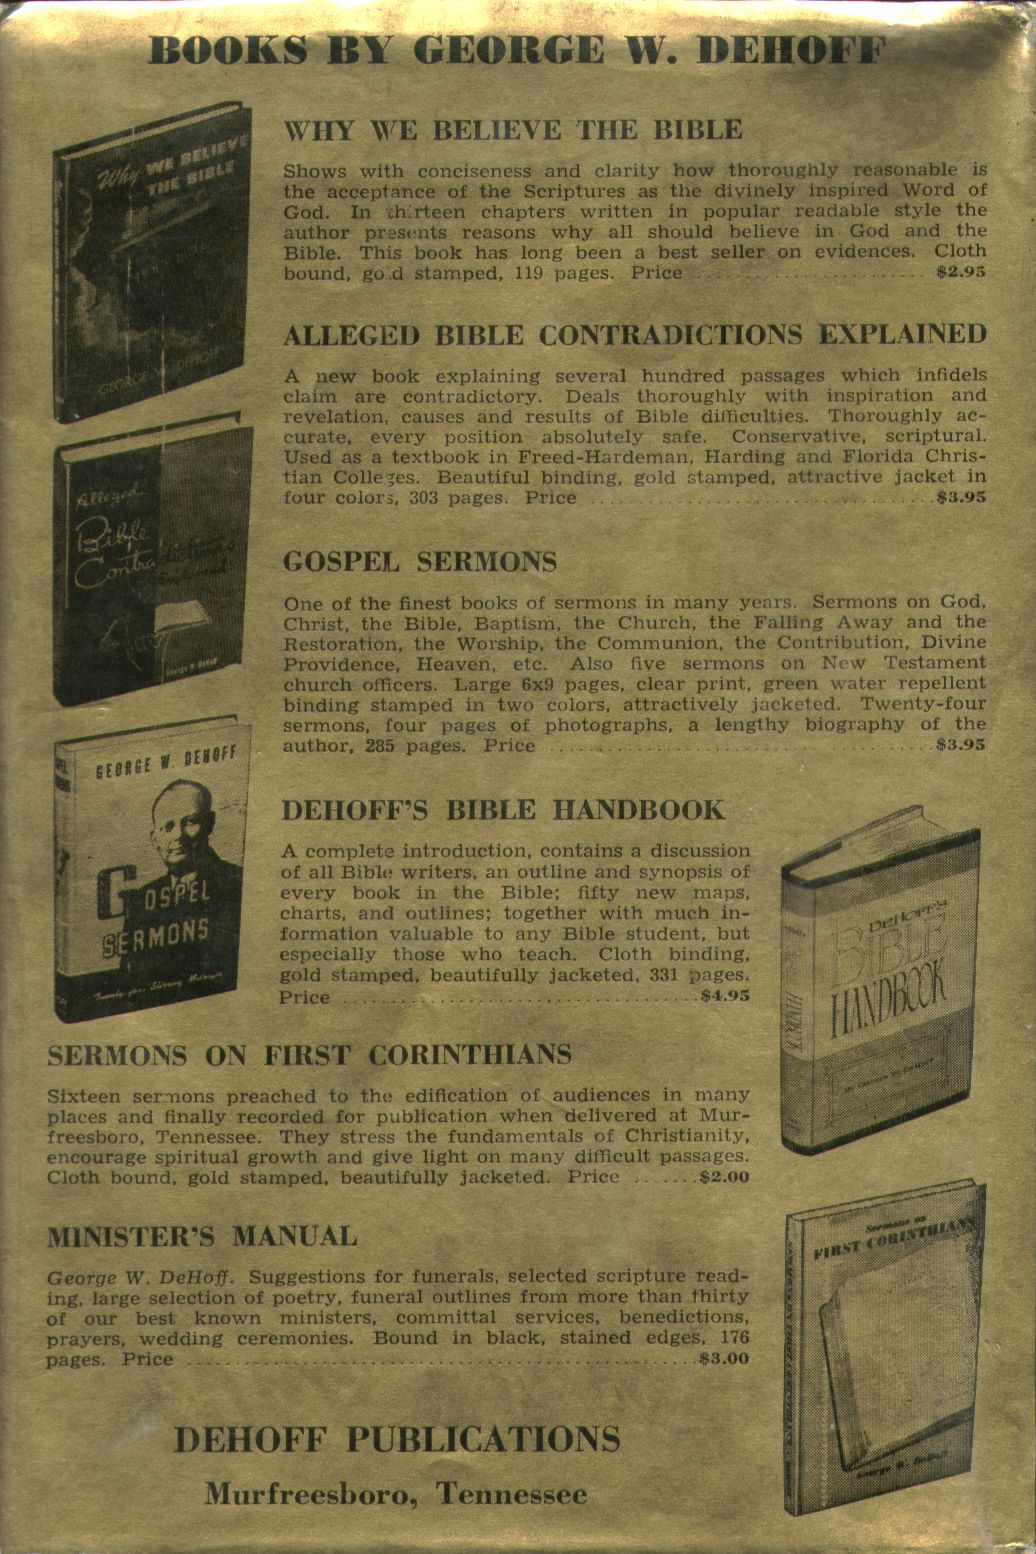 why we believe the bible by george washington dehoff